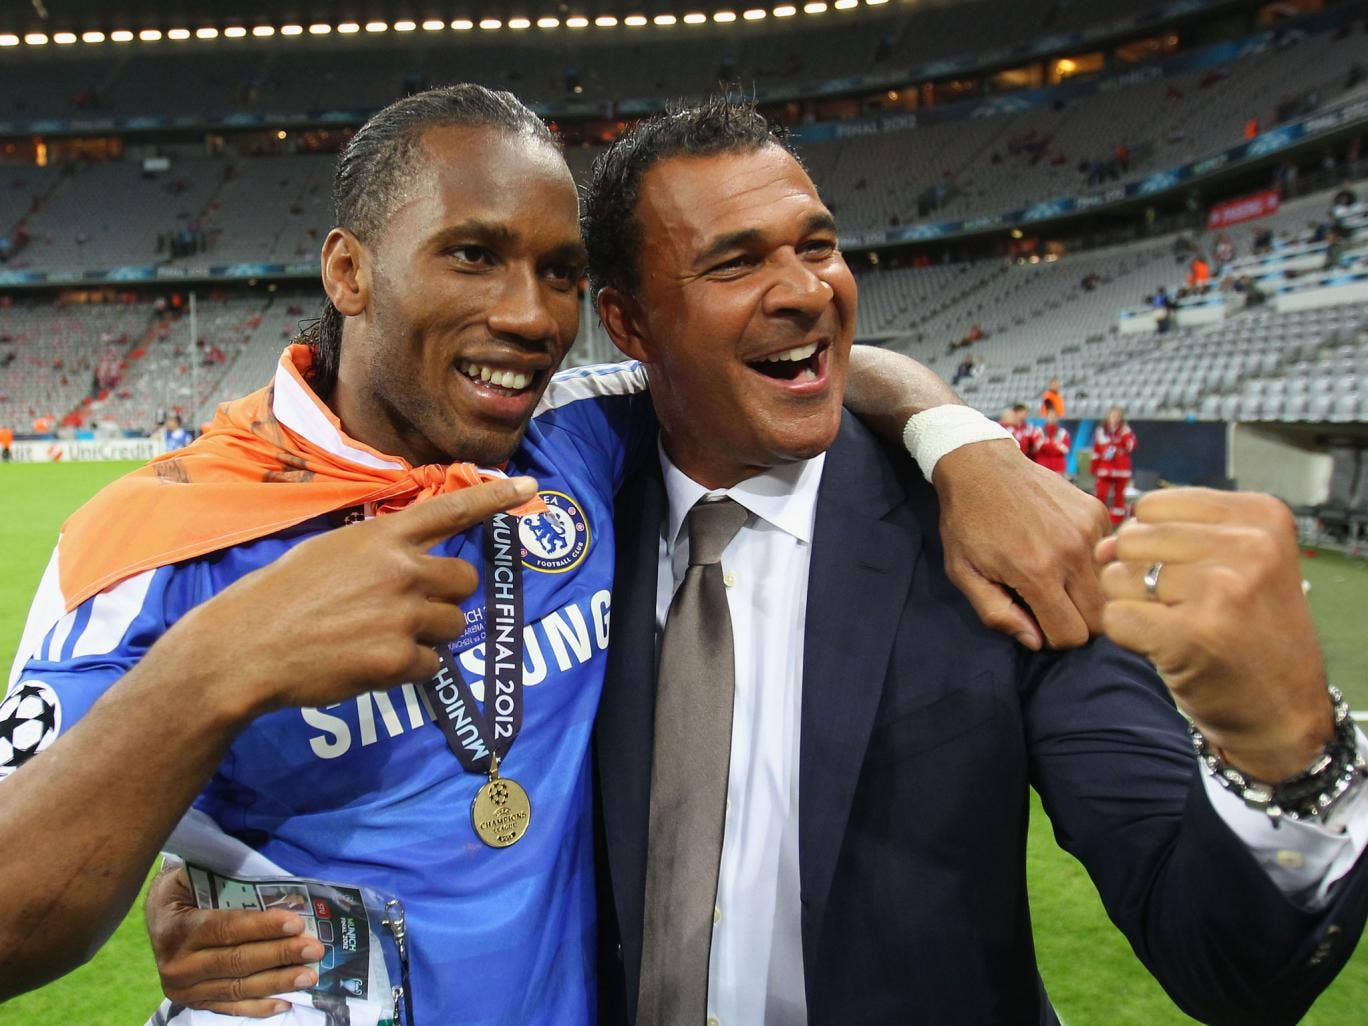 Didier Drogba of Chelsea and former Chelsea manager Ruud Gullit celebrate after their victory in the UEFA Champions League Final